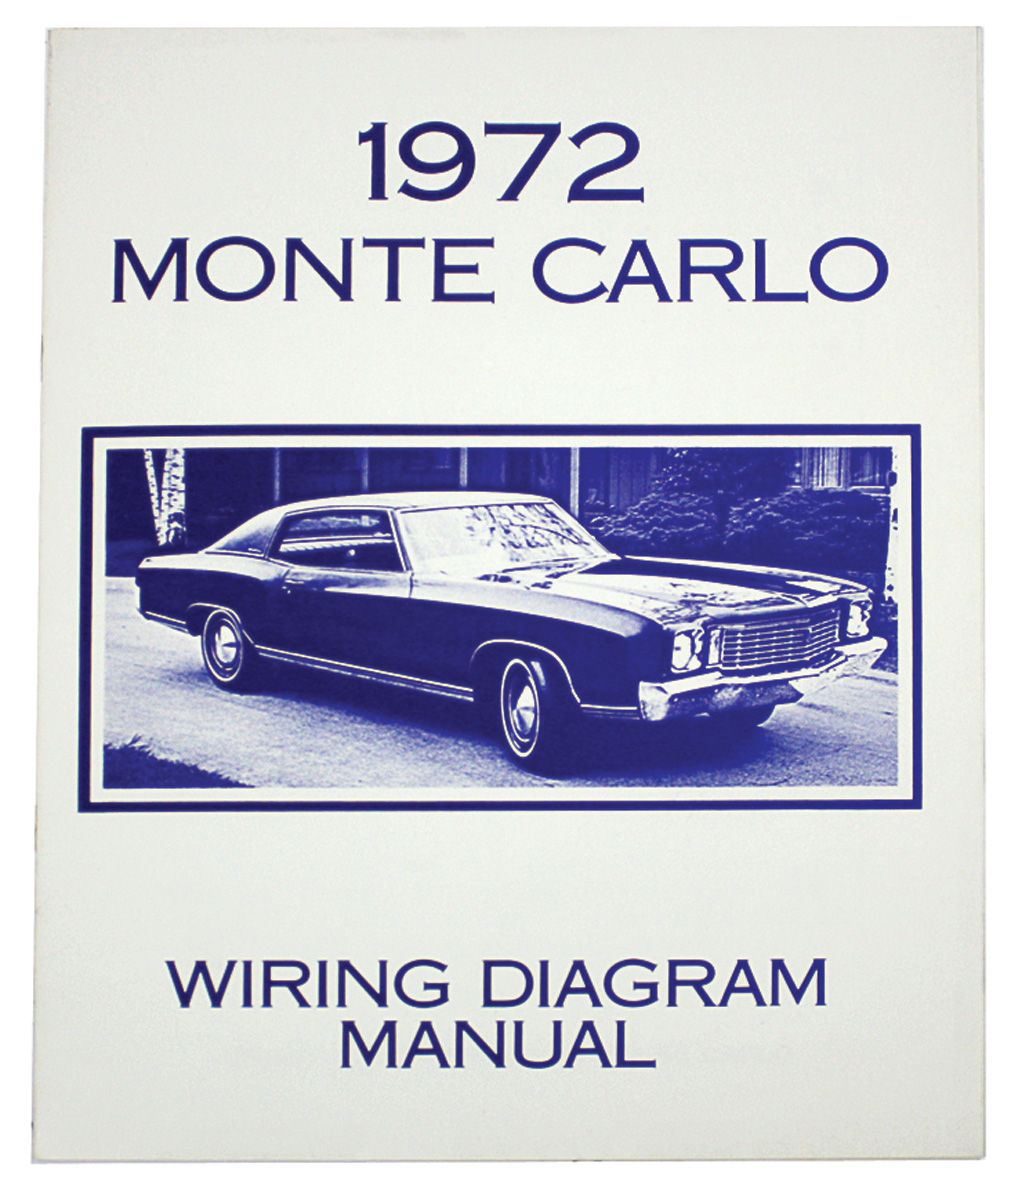 Photo of Monte Carlo Wiring Diagram Manuals